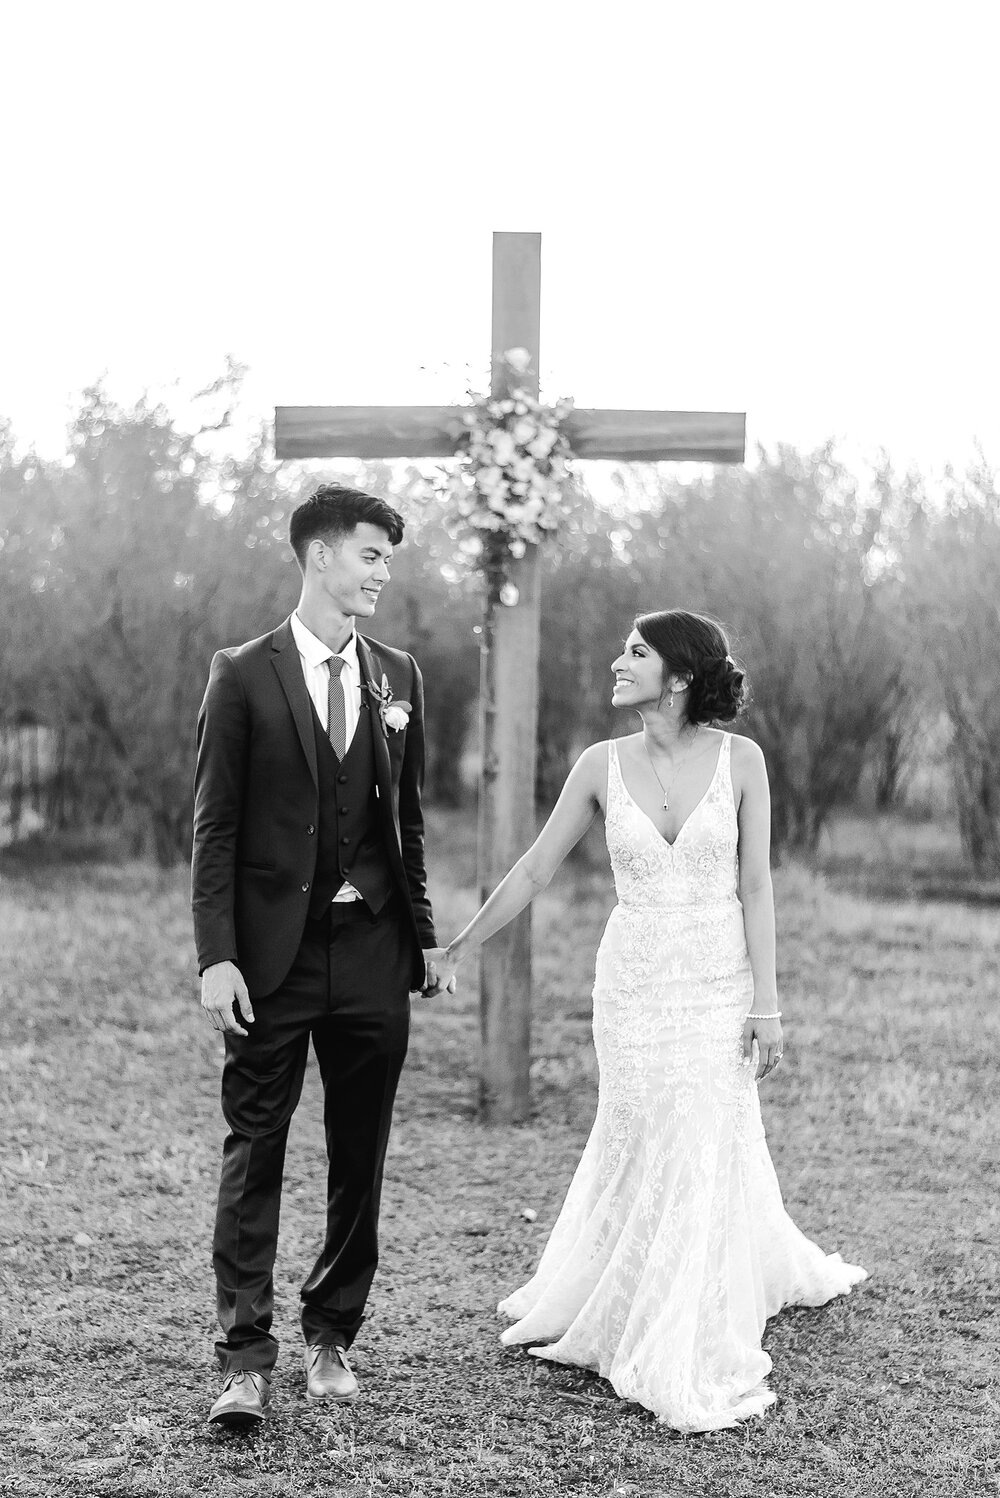 Christian wedding photo with cross